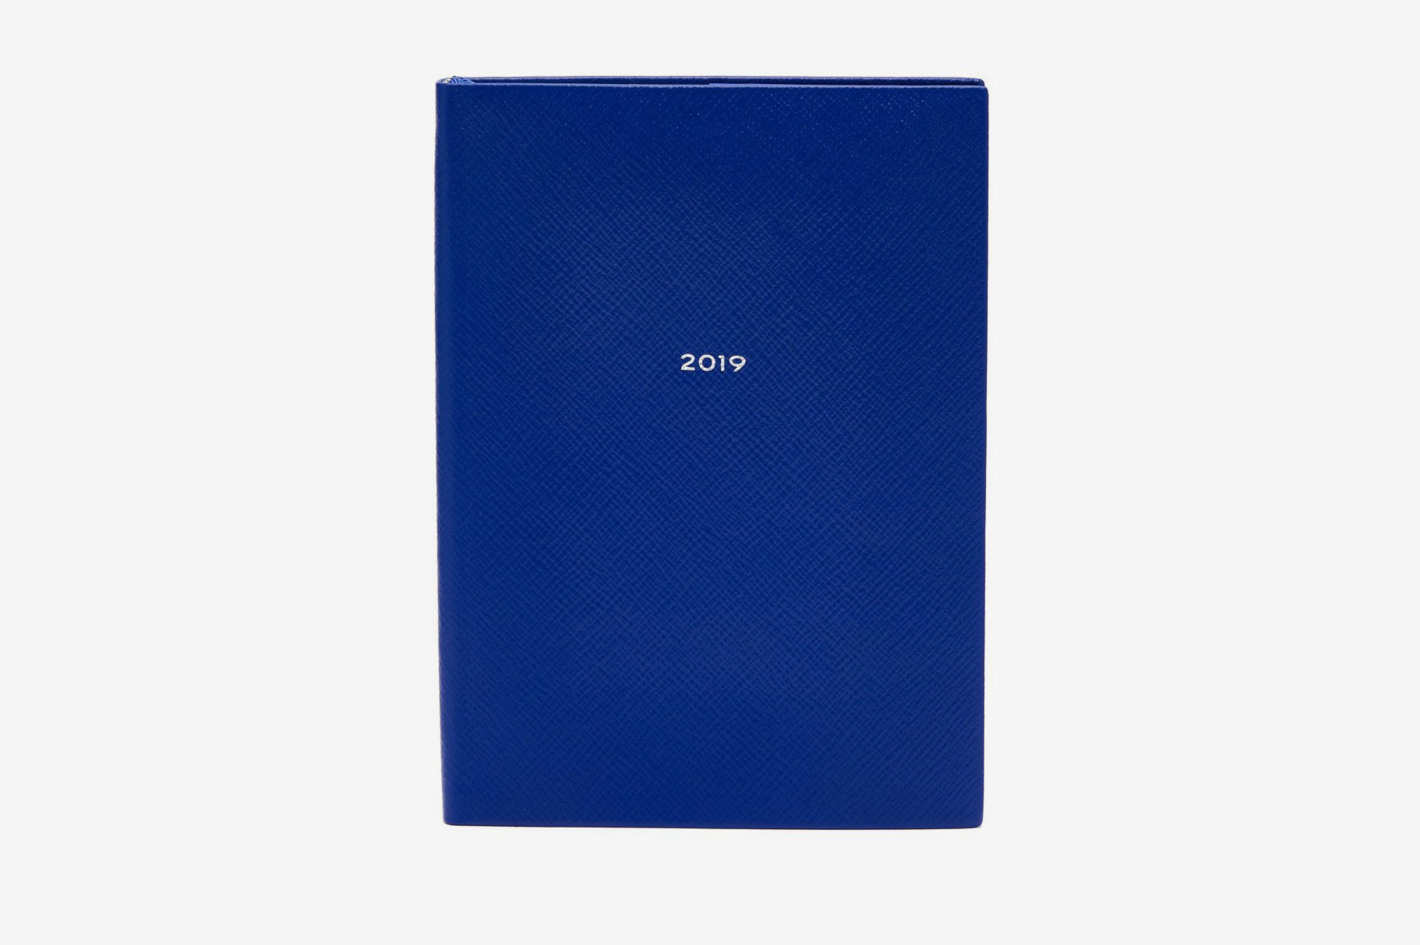 Smythson Soho 2019 Grained Leather Diary